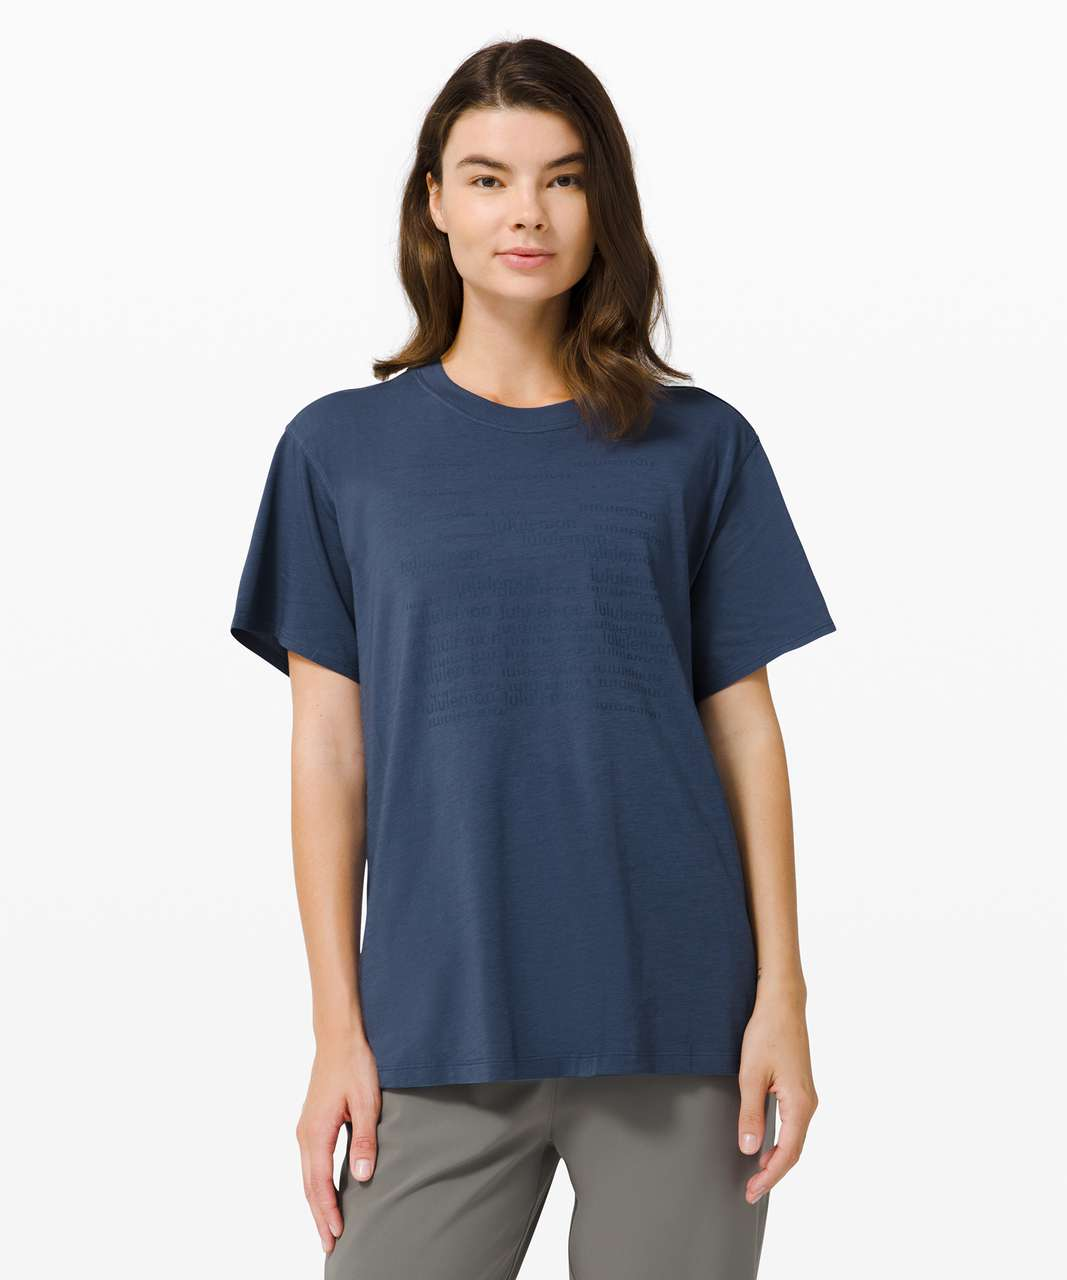 Lululemon All Yours Tee *Graphic - Iron Blue